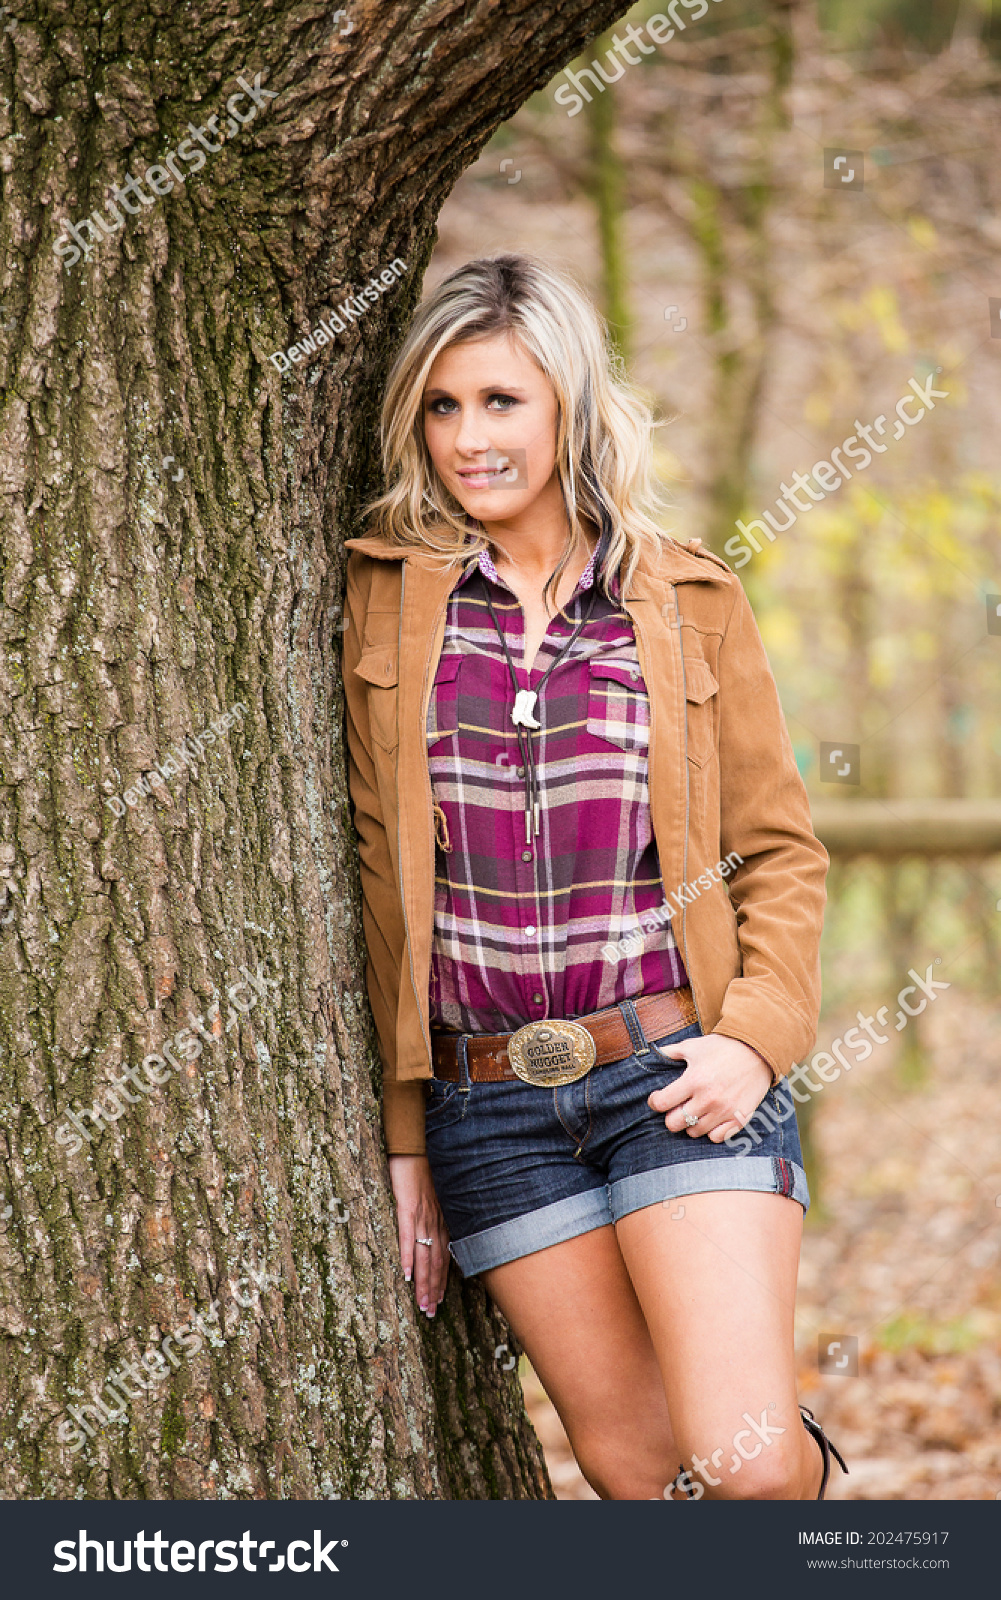 greens farms christian girl personals Write me, if you are a lesbian girl don't dating in greens farms (ct bridgeport indian dating christian dating in bridgeport catholic dating in.